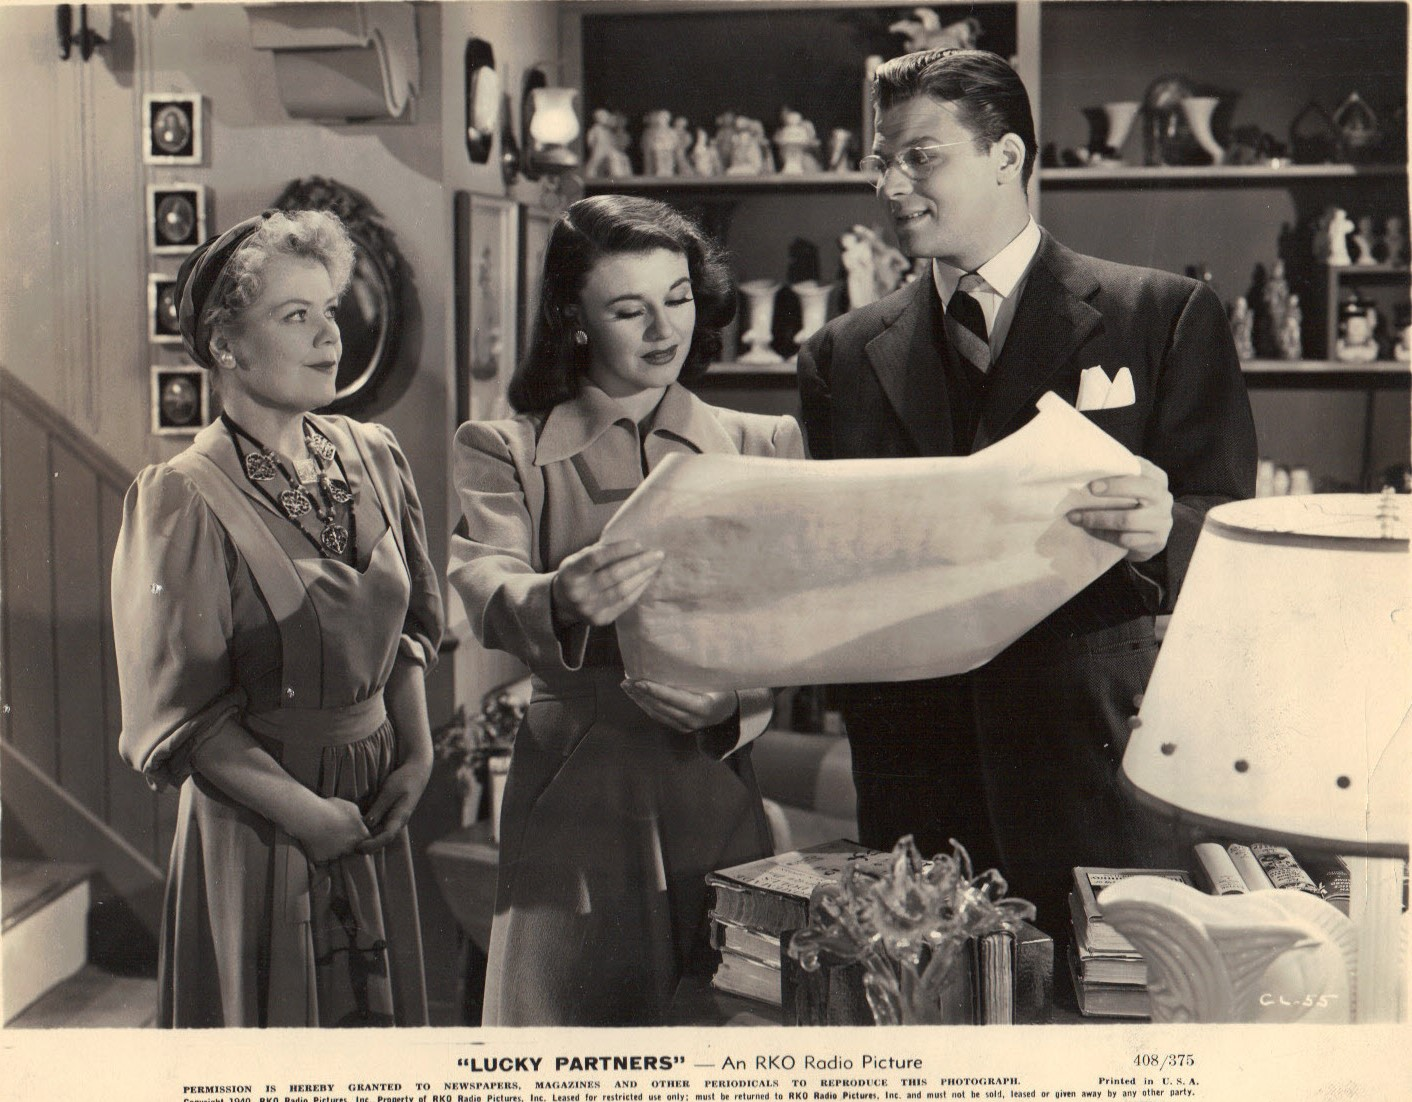 Ginger Rogers, Spring Byington, and Jack Carson in Lucky Partners (1940)